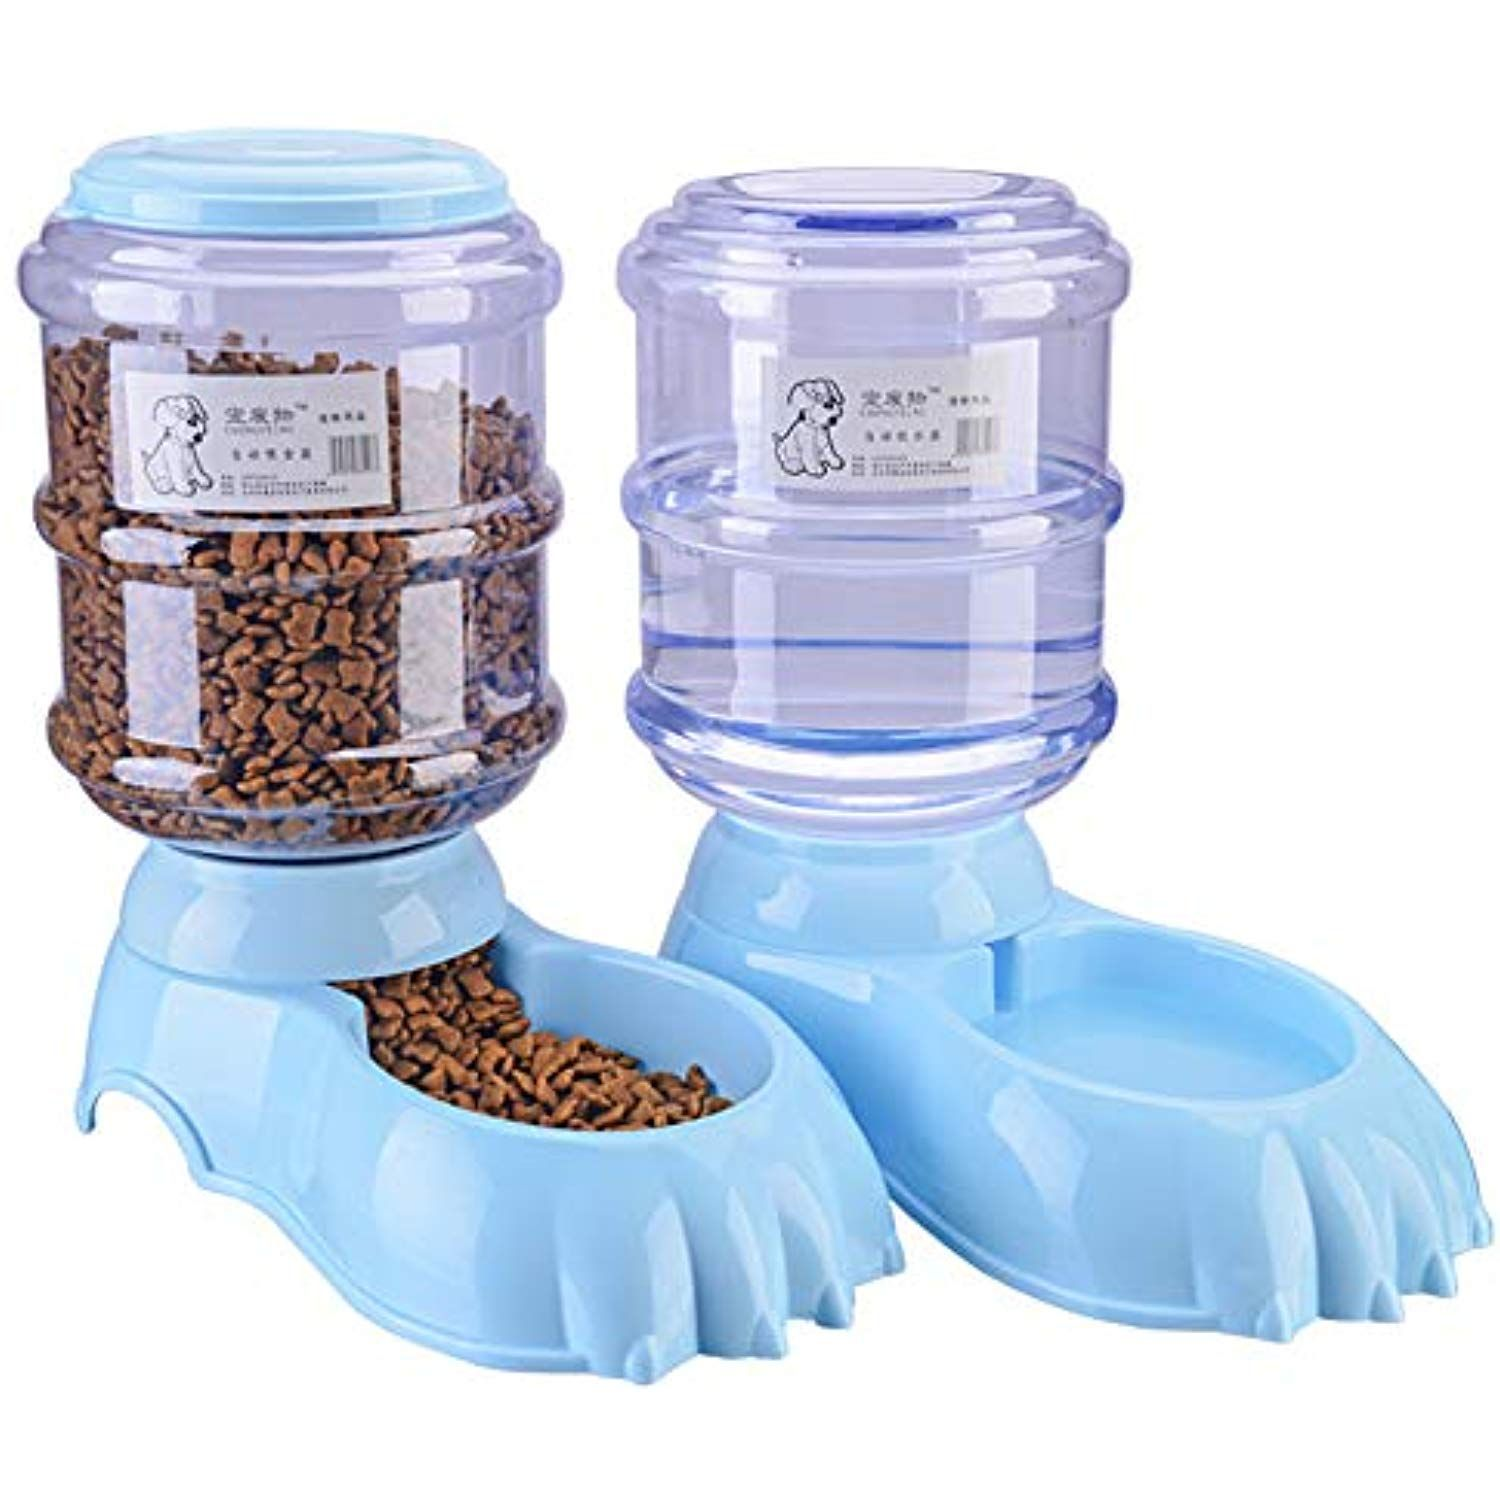 Automatic Pet Feeder And Water Dispenser Cat And Dog Food